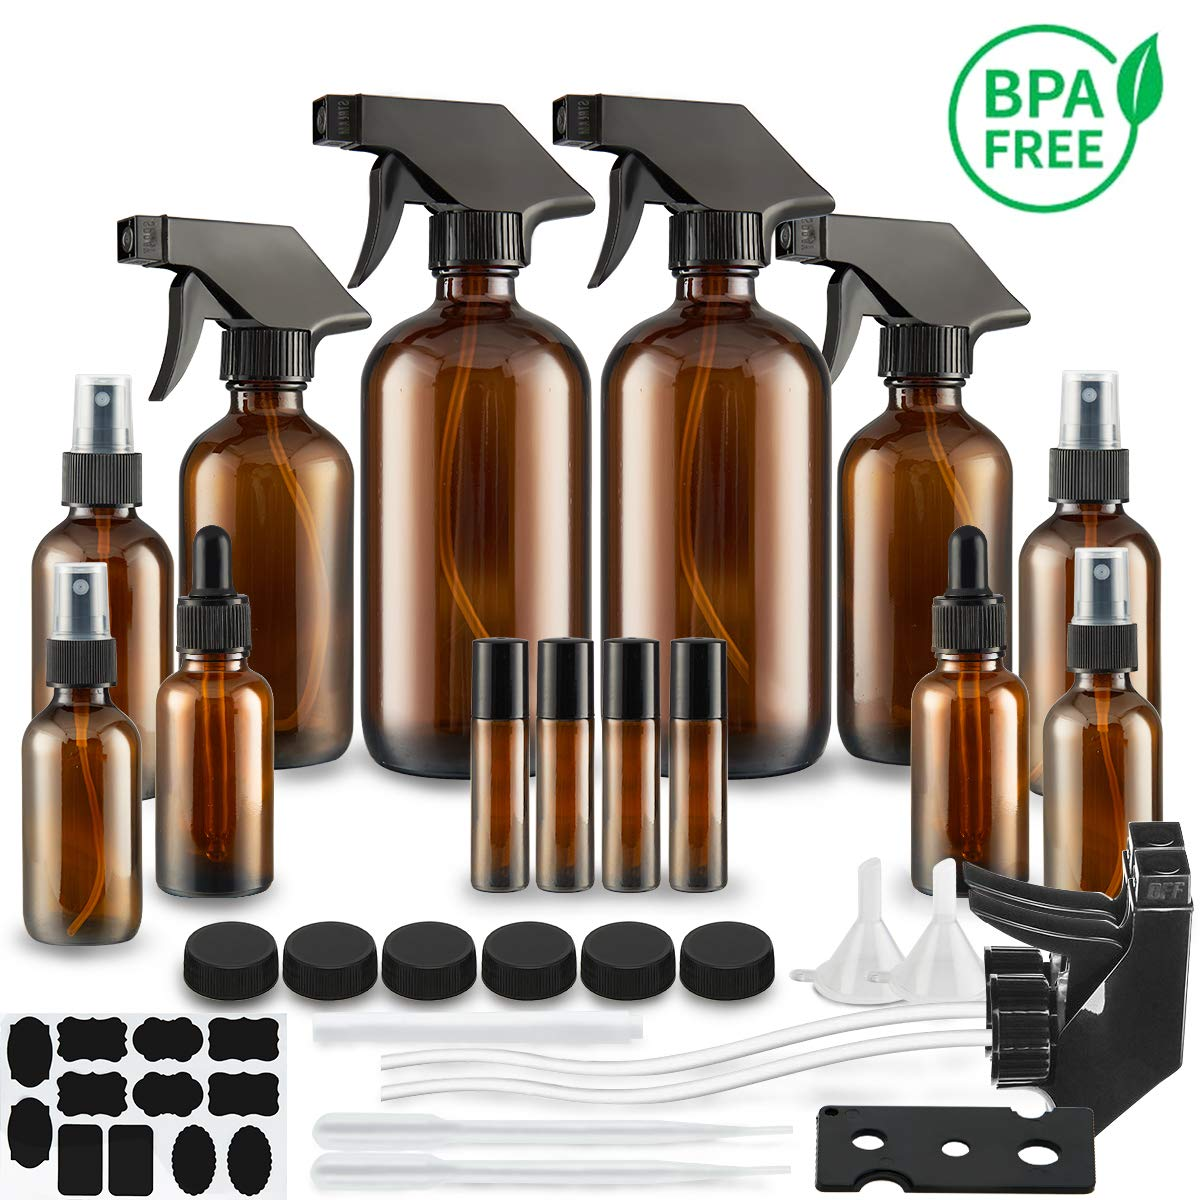 Glass Spray Bottle, SXUDA Amber Glass Spray Bottles Set Roller Bottles for Essential Oils, Cleaning Products or Aromatherapy (16OZ, 8OZ, 4OZ, 2OZ, 2OZ Dropper Bottle) x 2, 10 ml Roller Bottle x 4 by SXUDA